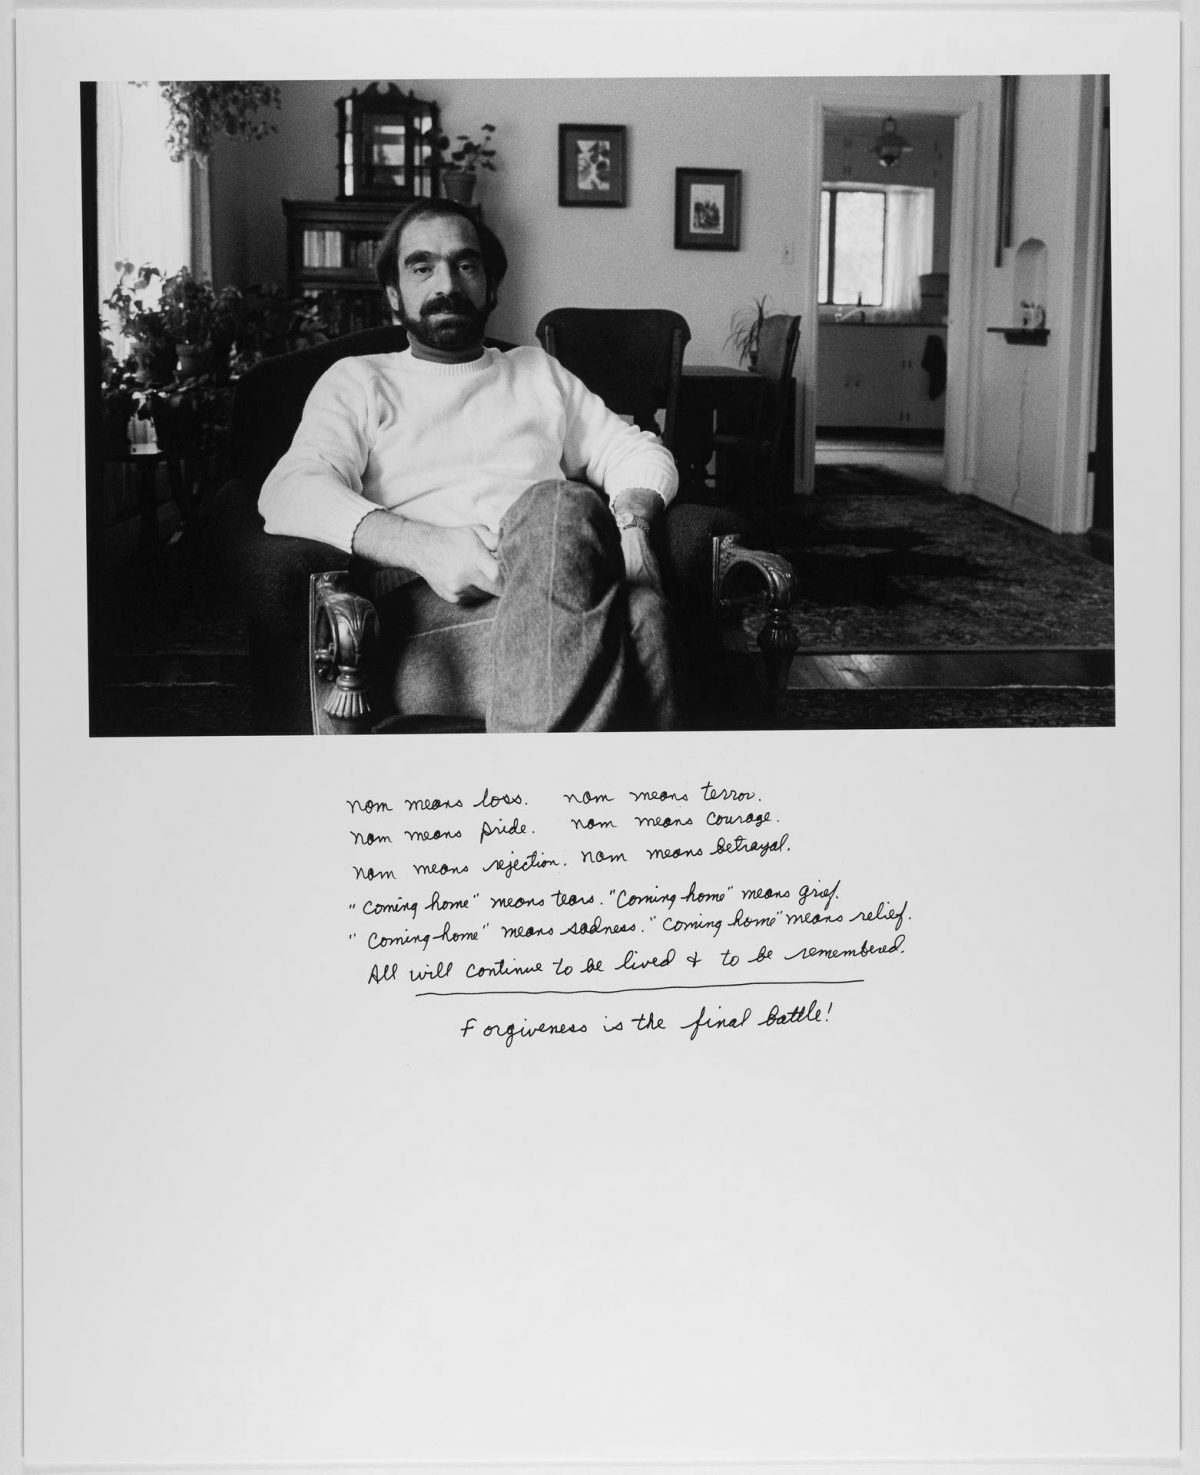 """From the portfolio War Story: Vietnam Veterans, Don Unrau, 13 5/16 x 14 1/8 inches, pigment print. A horizontal, rectangular, black and white photo positioned on the top half of a vertical white rectangle. The photo shows a white man sitting in an armchair, facing the viewer with legs crossed at the knee. He looks directly at the viewer with a neutral expression. He has dark hair and full beard, wears a white shirt and jeans. Behind him is the interior of a home with plants, dining room table and chairs and a kitchen seen through a doorway. Below the photo is a poem in the man's own handwriting. It reads: Nam means loss. Nam means terror. /Nam means pride. Nam means courage. / Nam means rejection. Nam means betrayal. / """"Coming home"""" means tears. """"Coming home"""" means grief. / """"Coming home"""" means sadness. """"Coming home"""" means relief. / All will continue to be lived & to be remembered. / Forgiveness is the final battle!"""